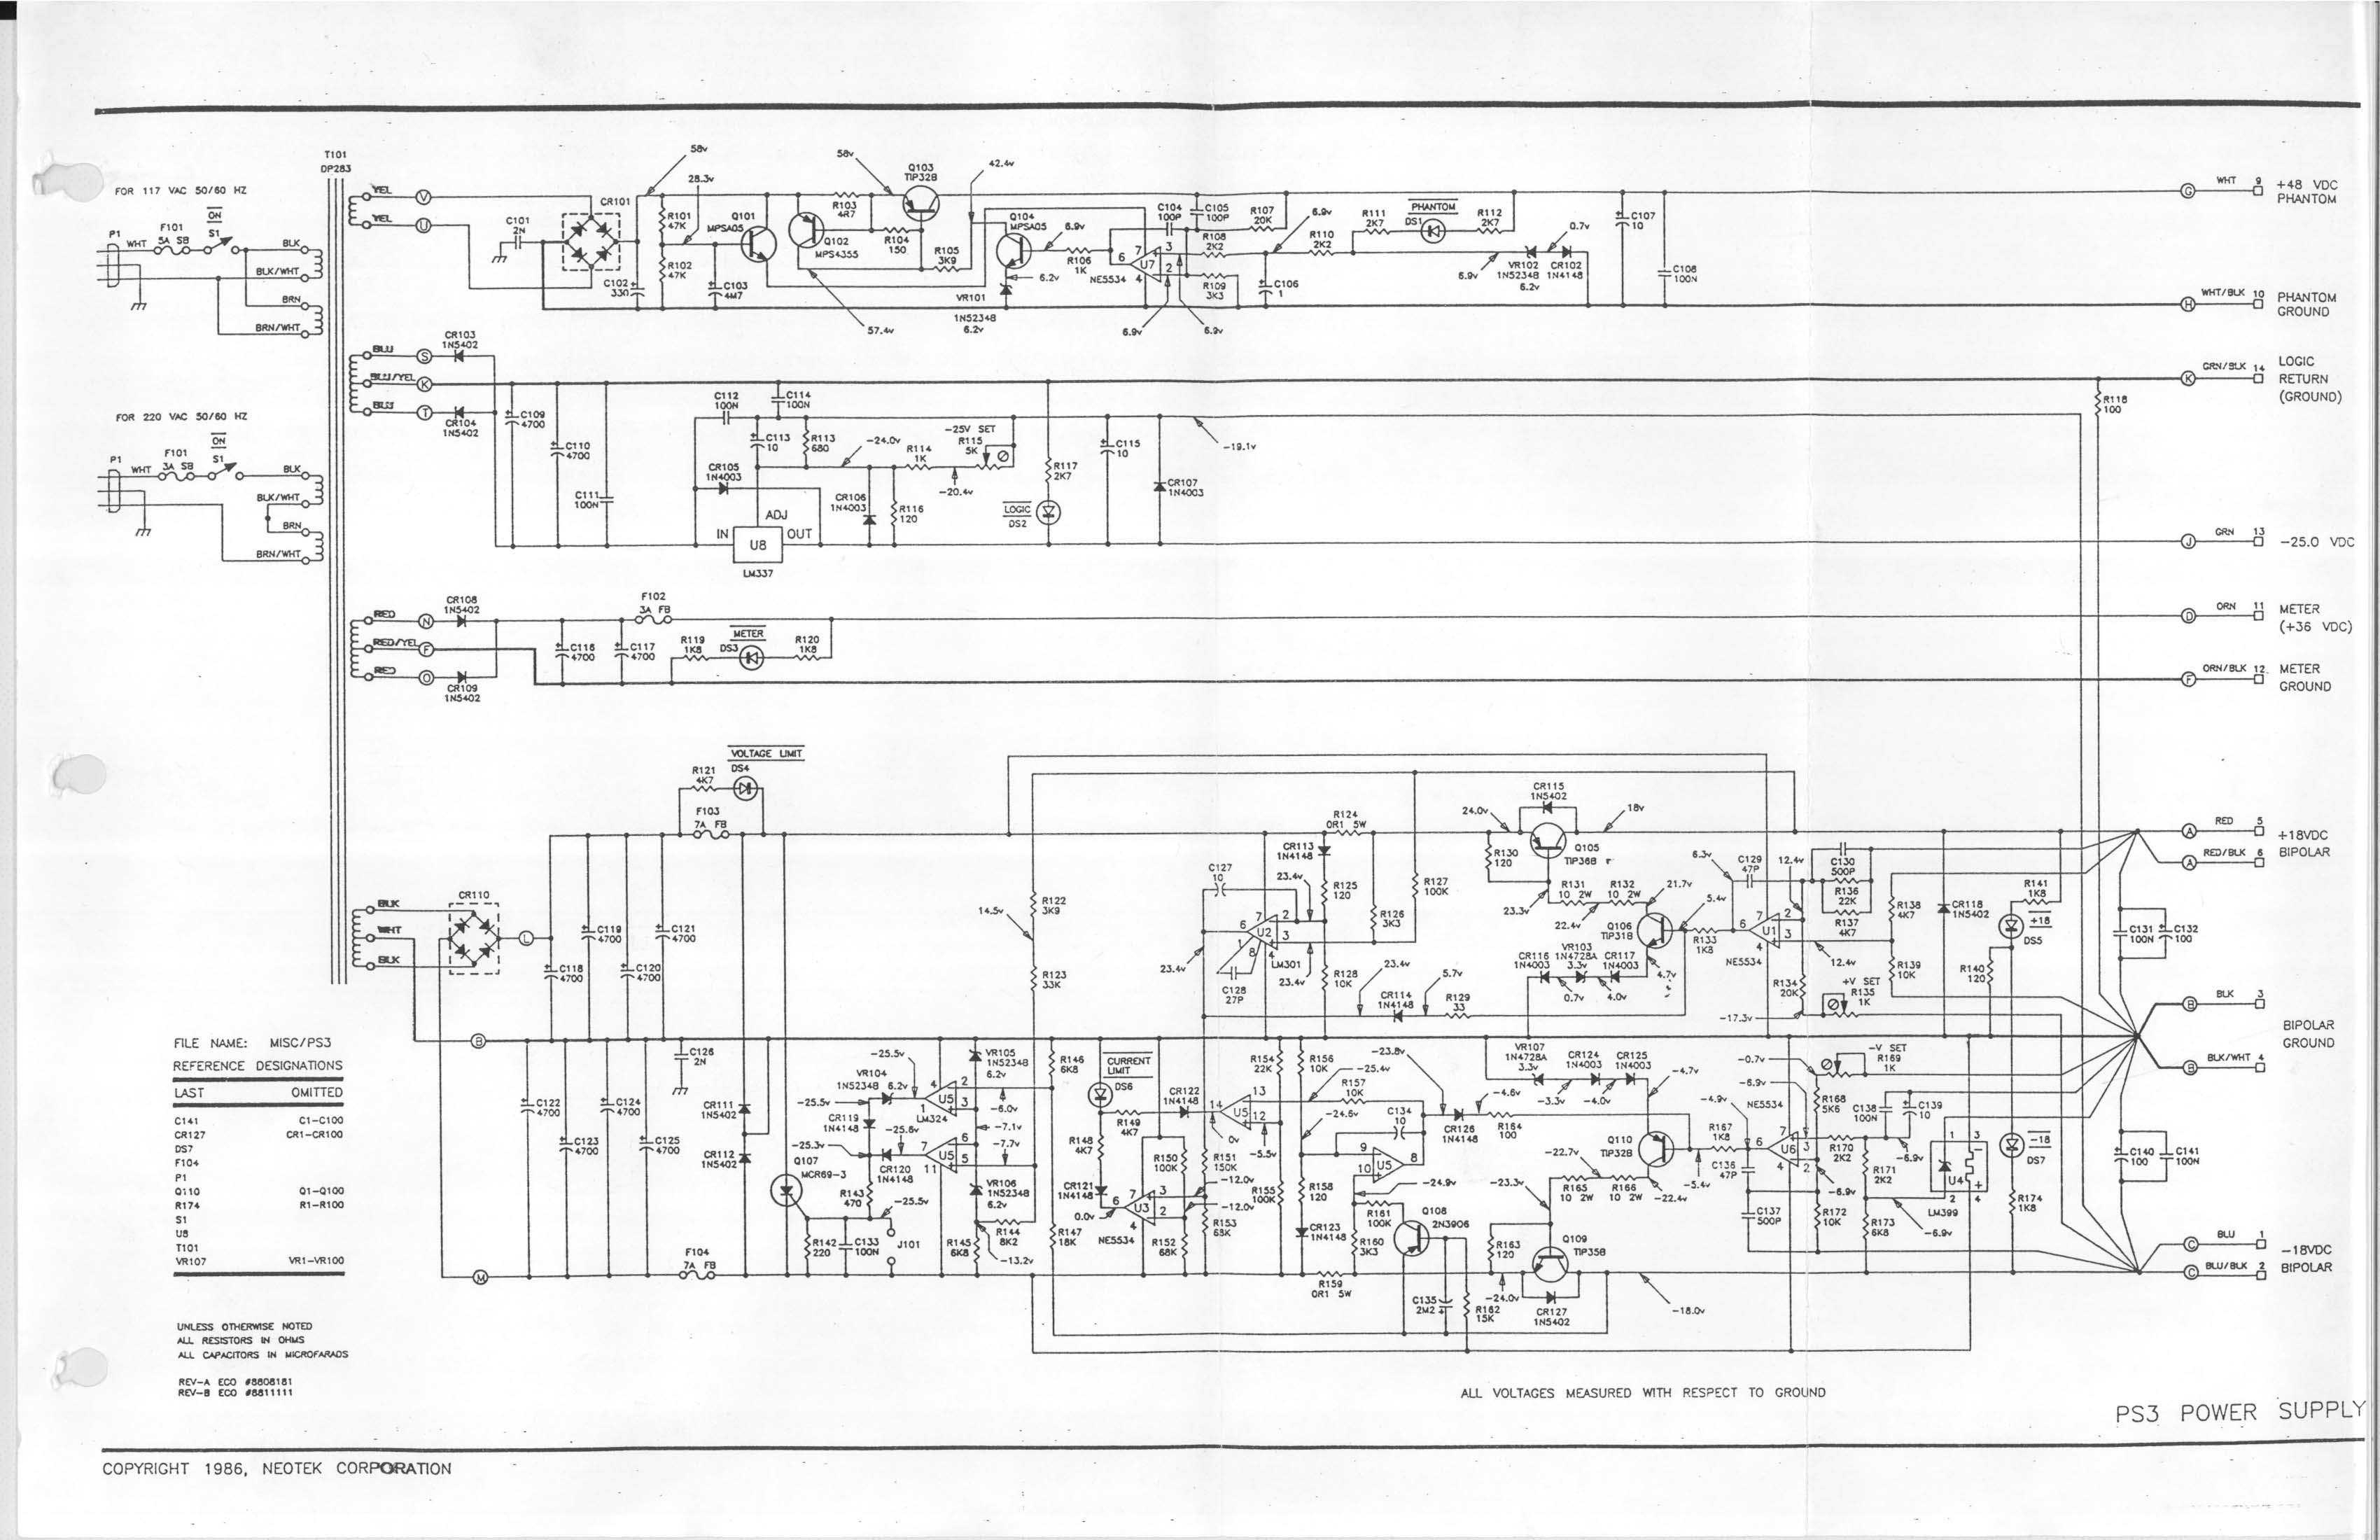 Playstation 3 Block Diagram Free Wiring For You Ps3 Controller Parts Xbox Console Download Schematic